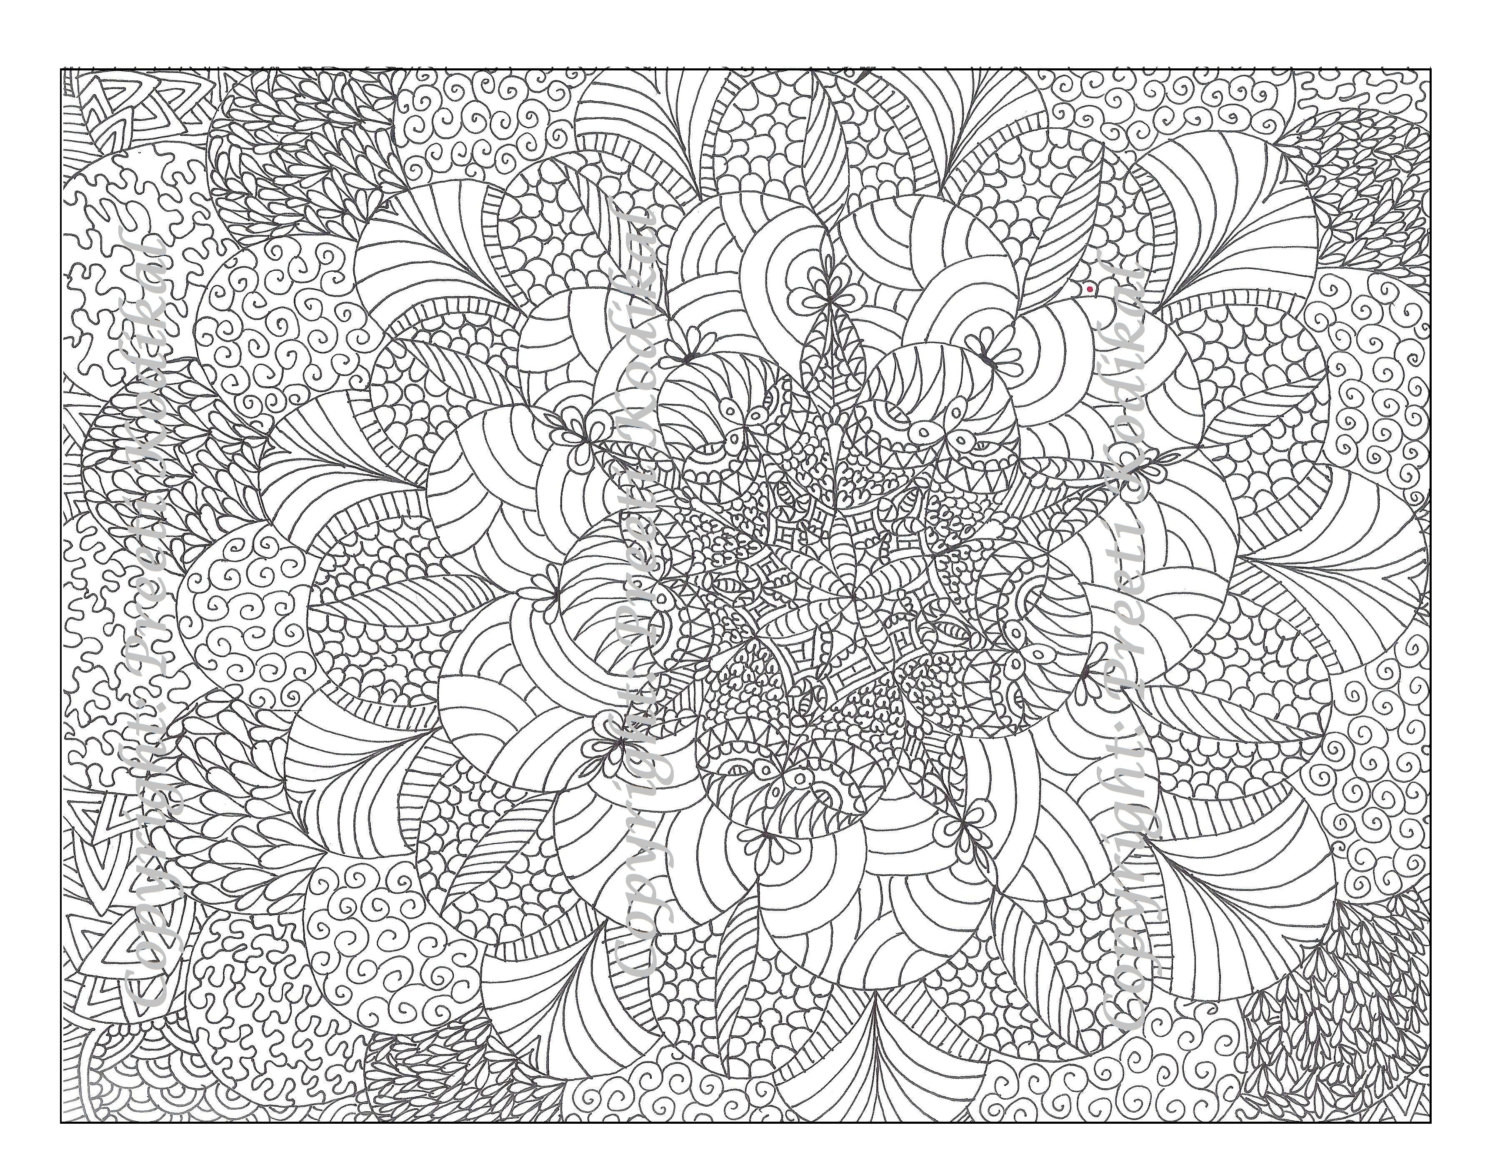 Free Coloring Pages For Adults Printable  Free Printable Abstract Coloring Pages for Adults